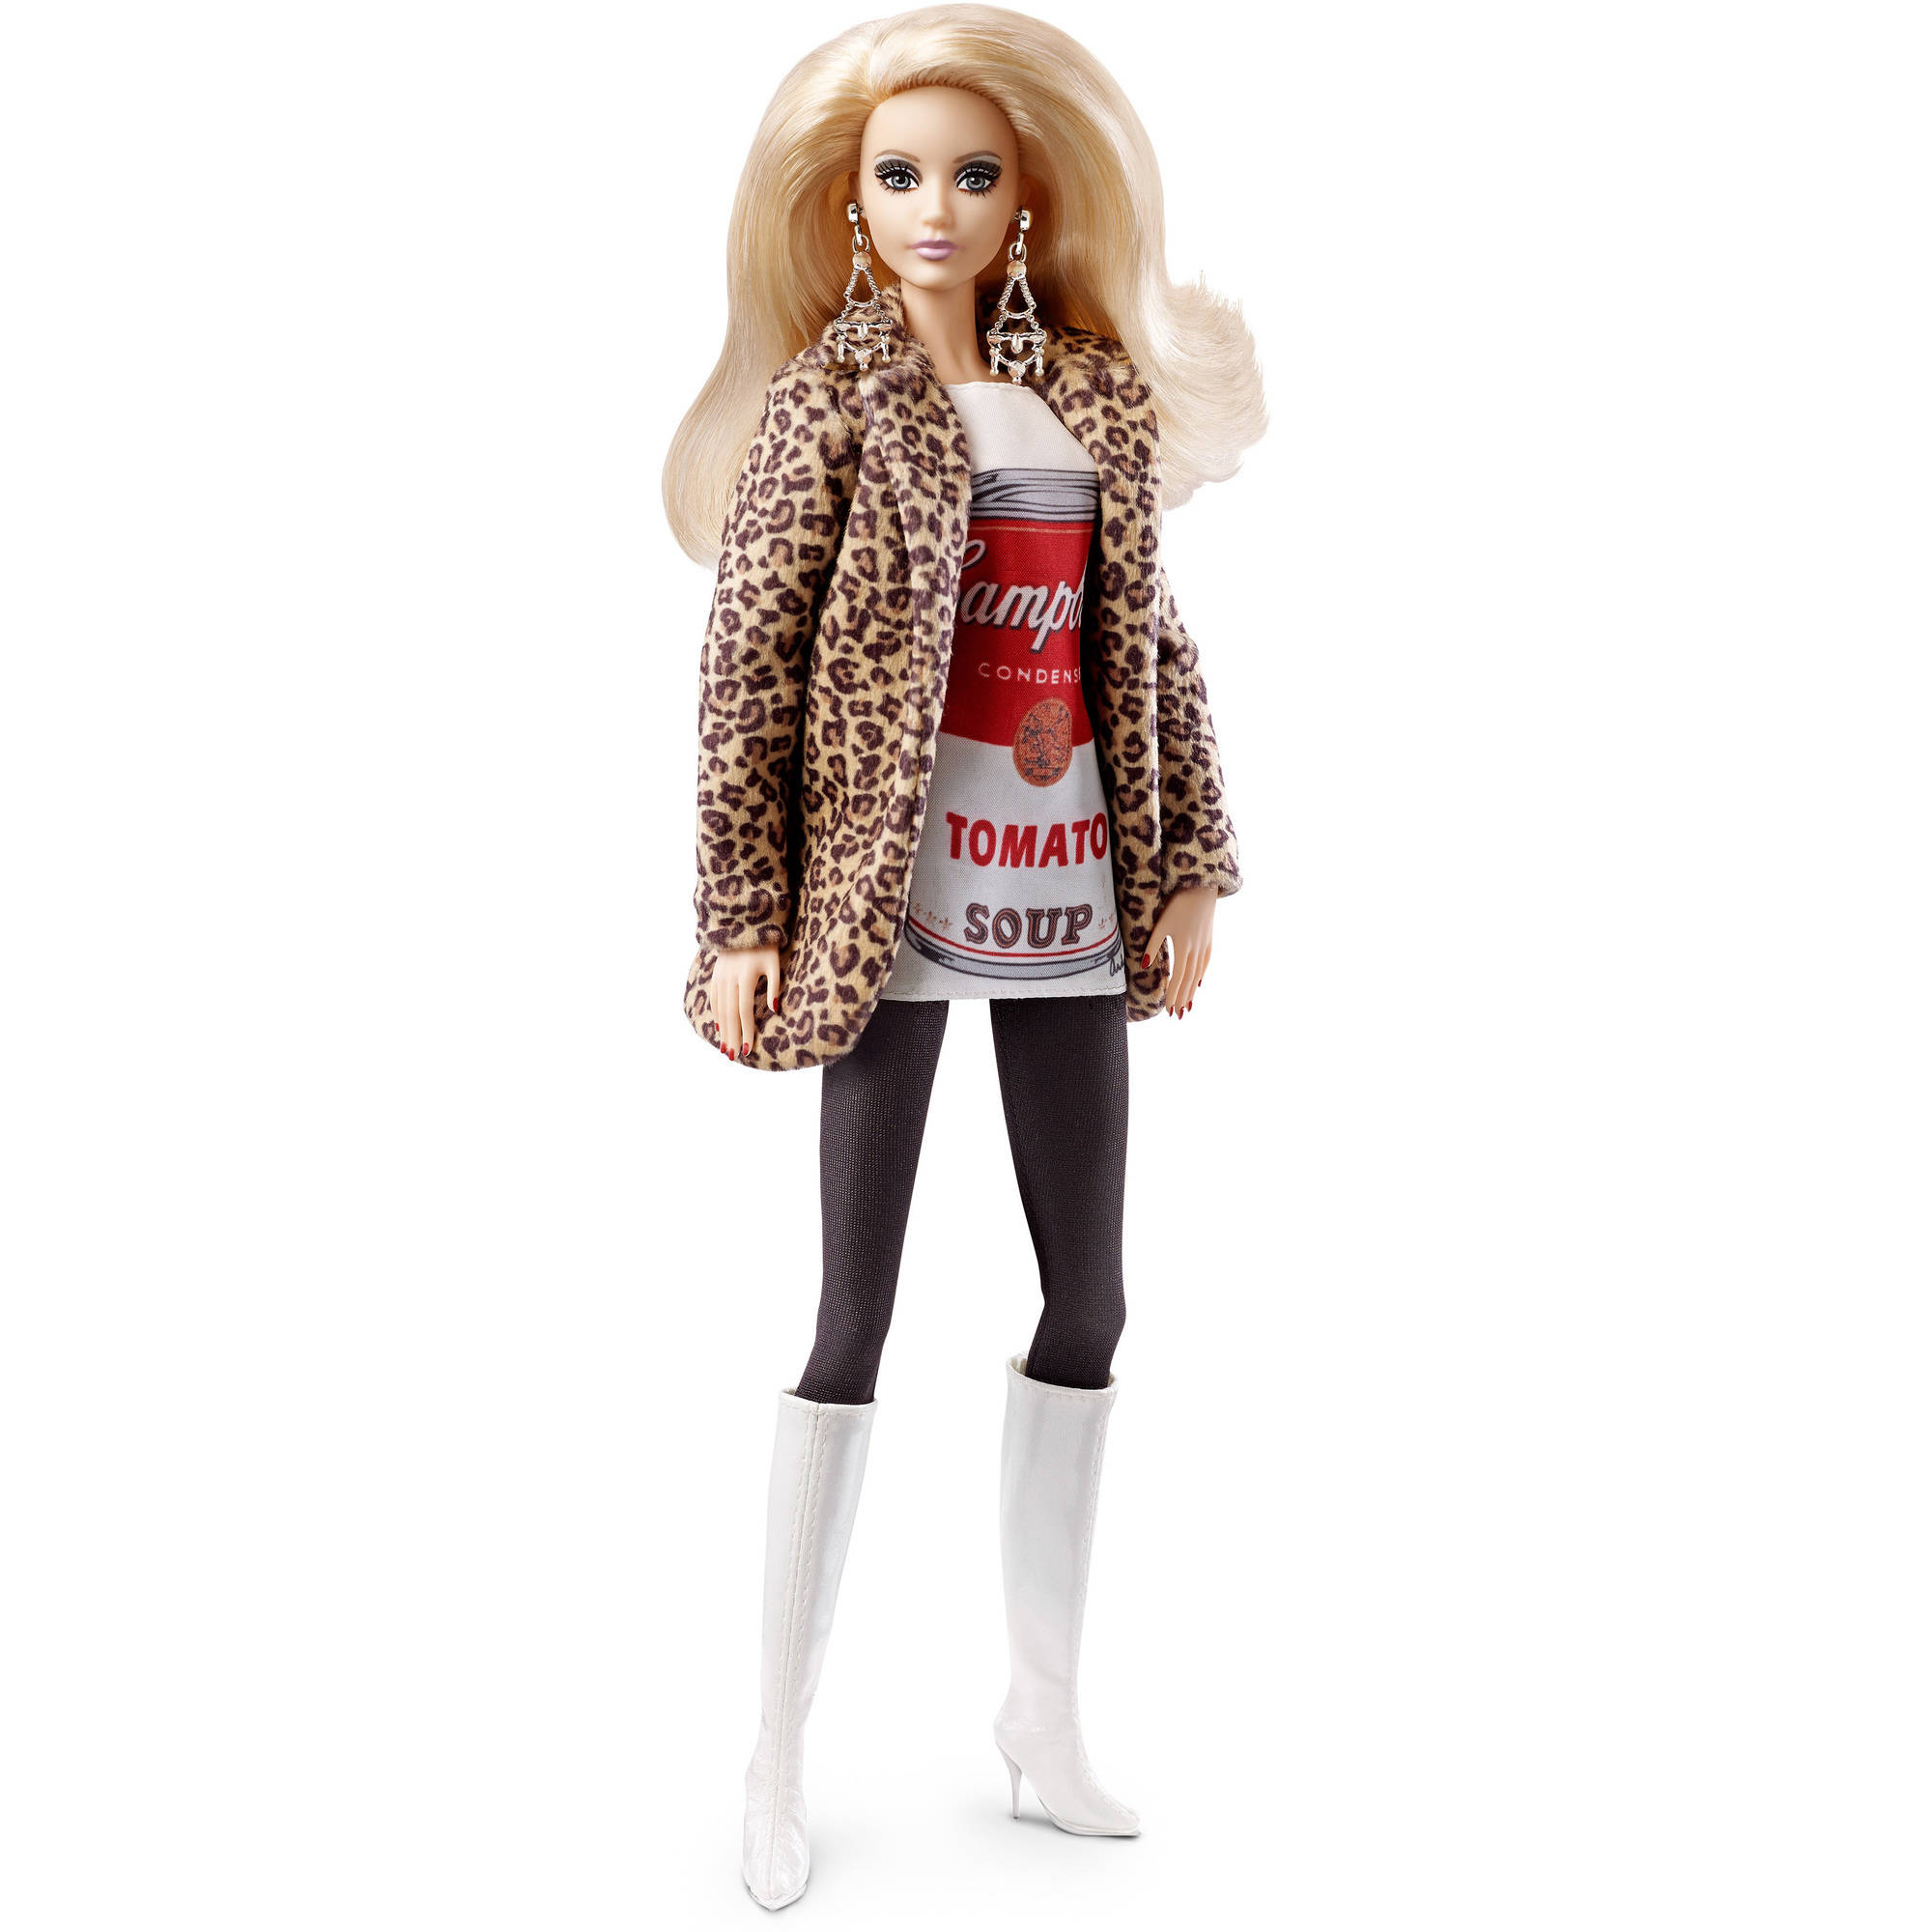 The Barbie Collection, 2016